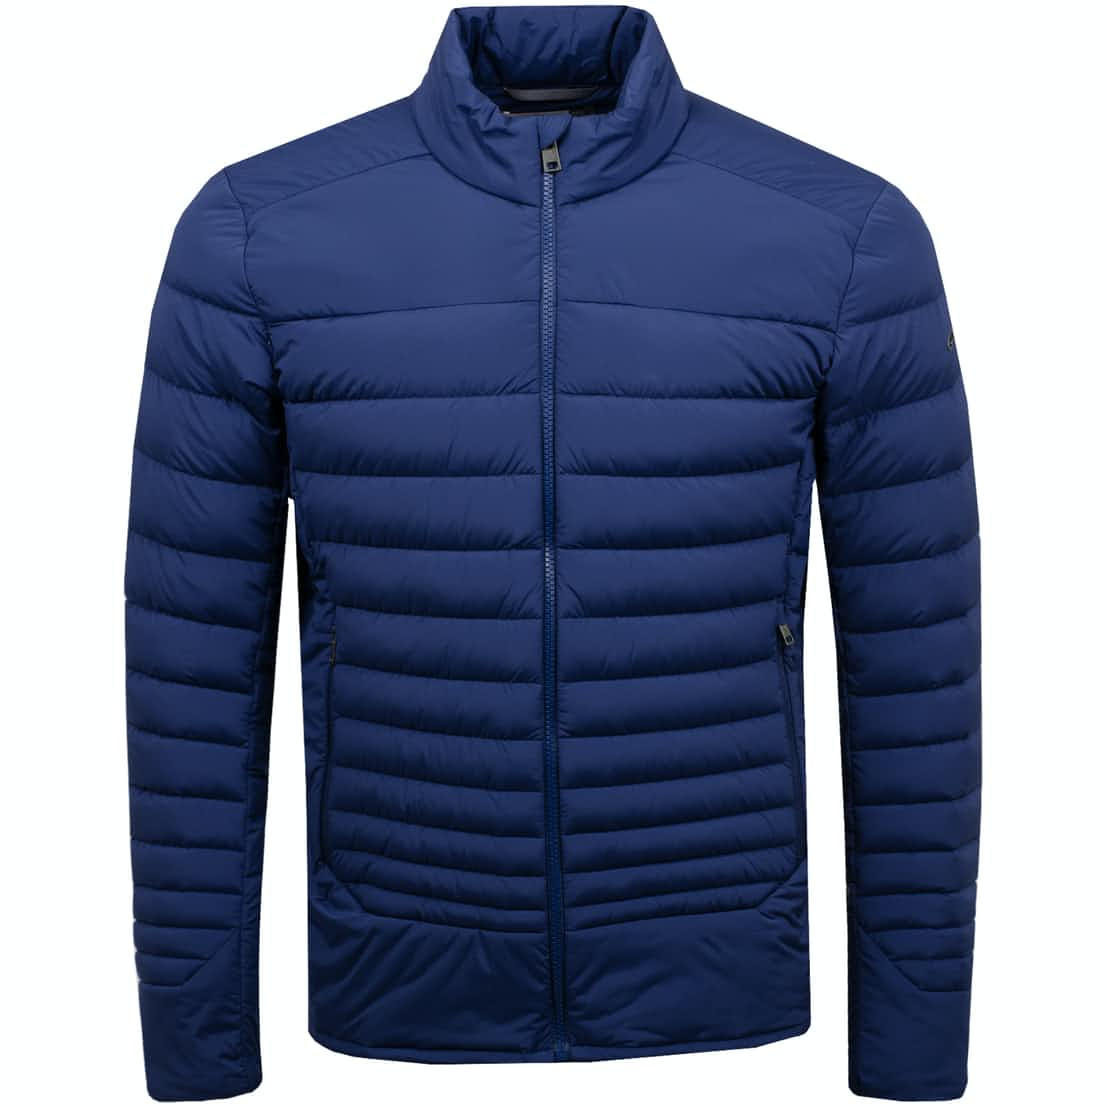 Blackcomb Stretch Jacket Atlanta Blue - 2019